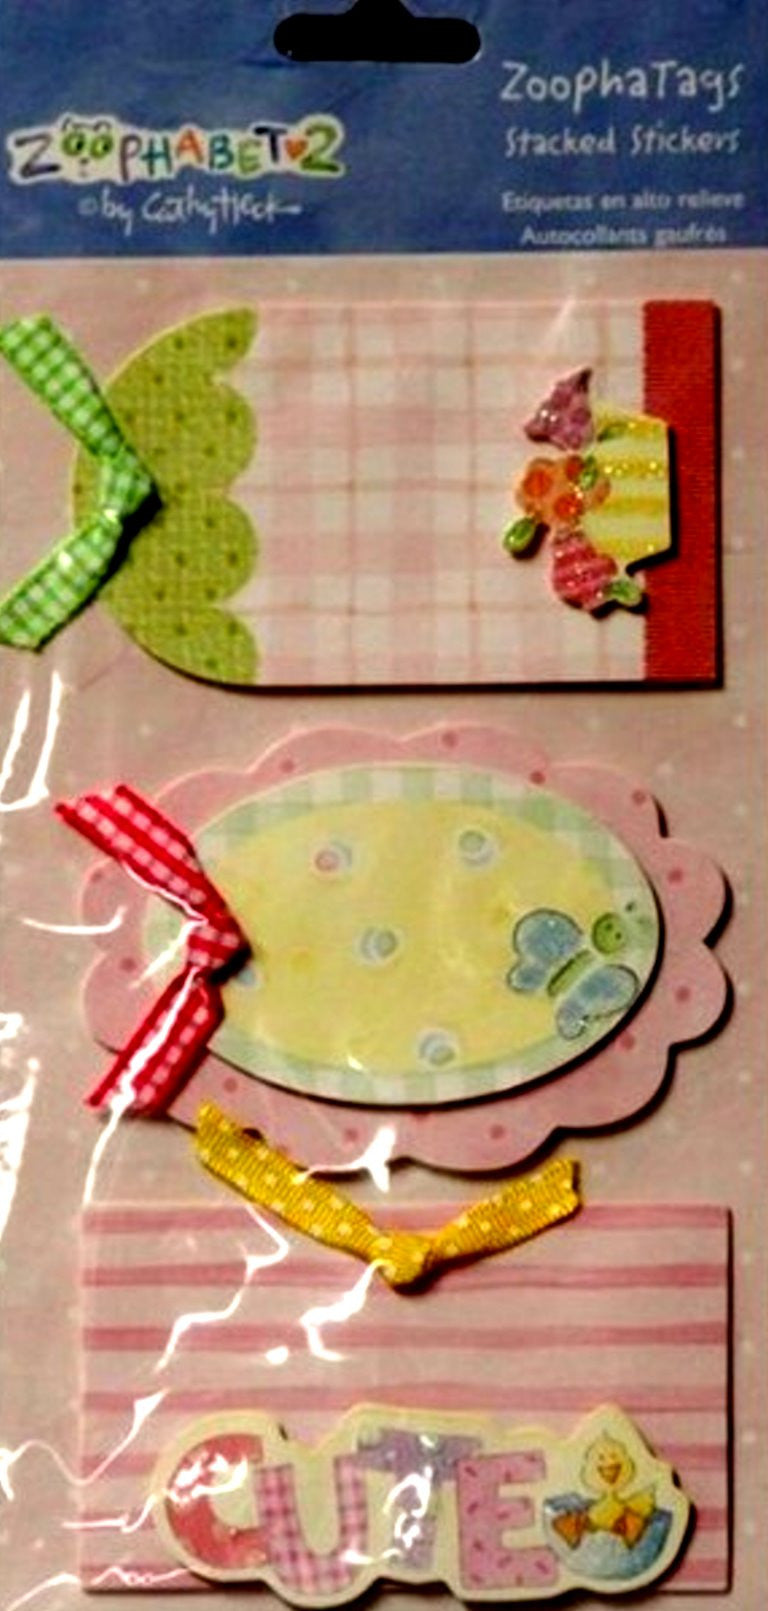 C. R. Gibson Markings Cathy Heck Zoophabet2  Zoopha Baby Tags Stacked Stickers - SCRAPBOOKFARE